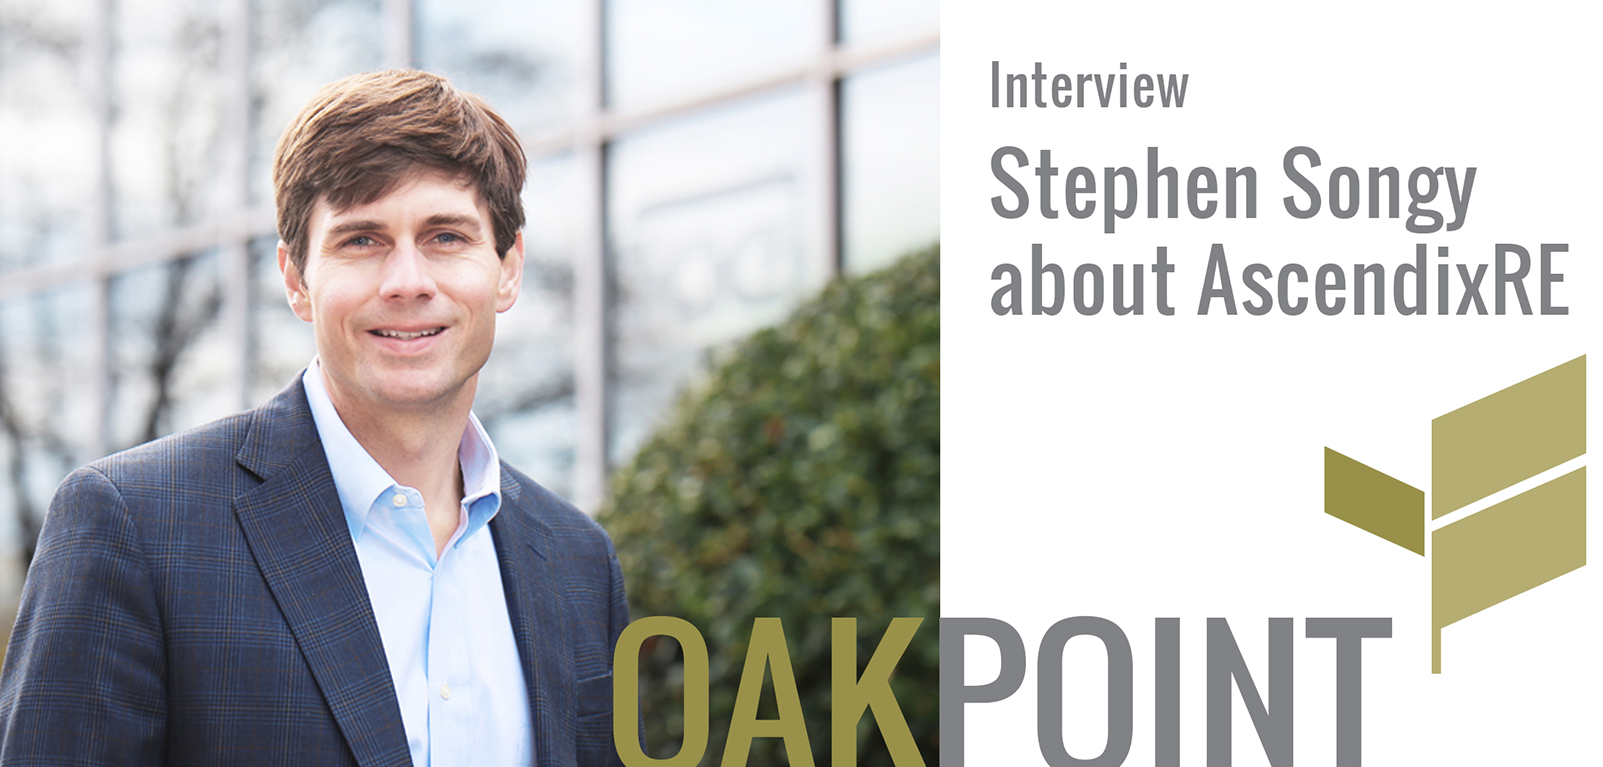 Interview with Stephen Songy